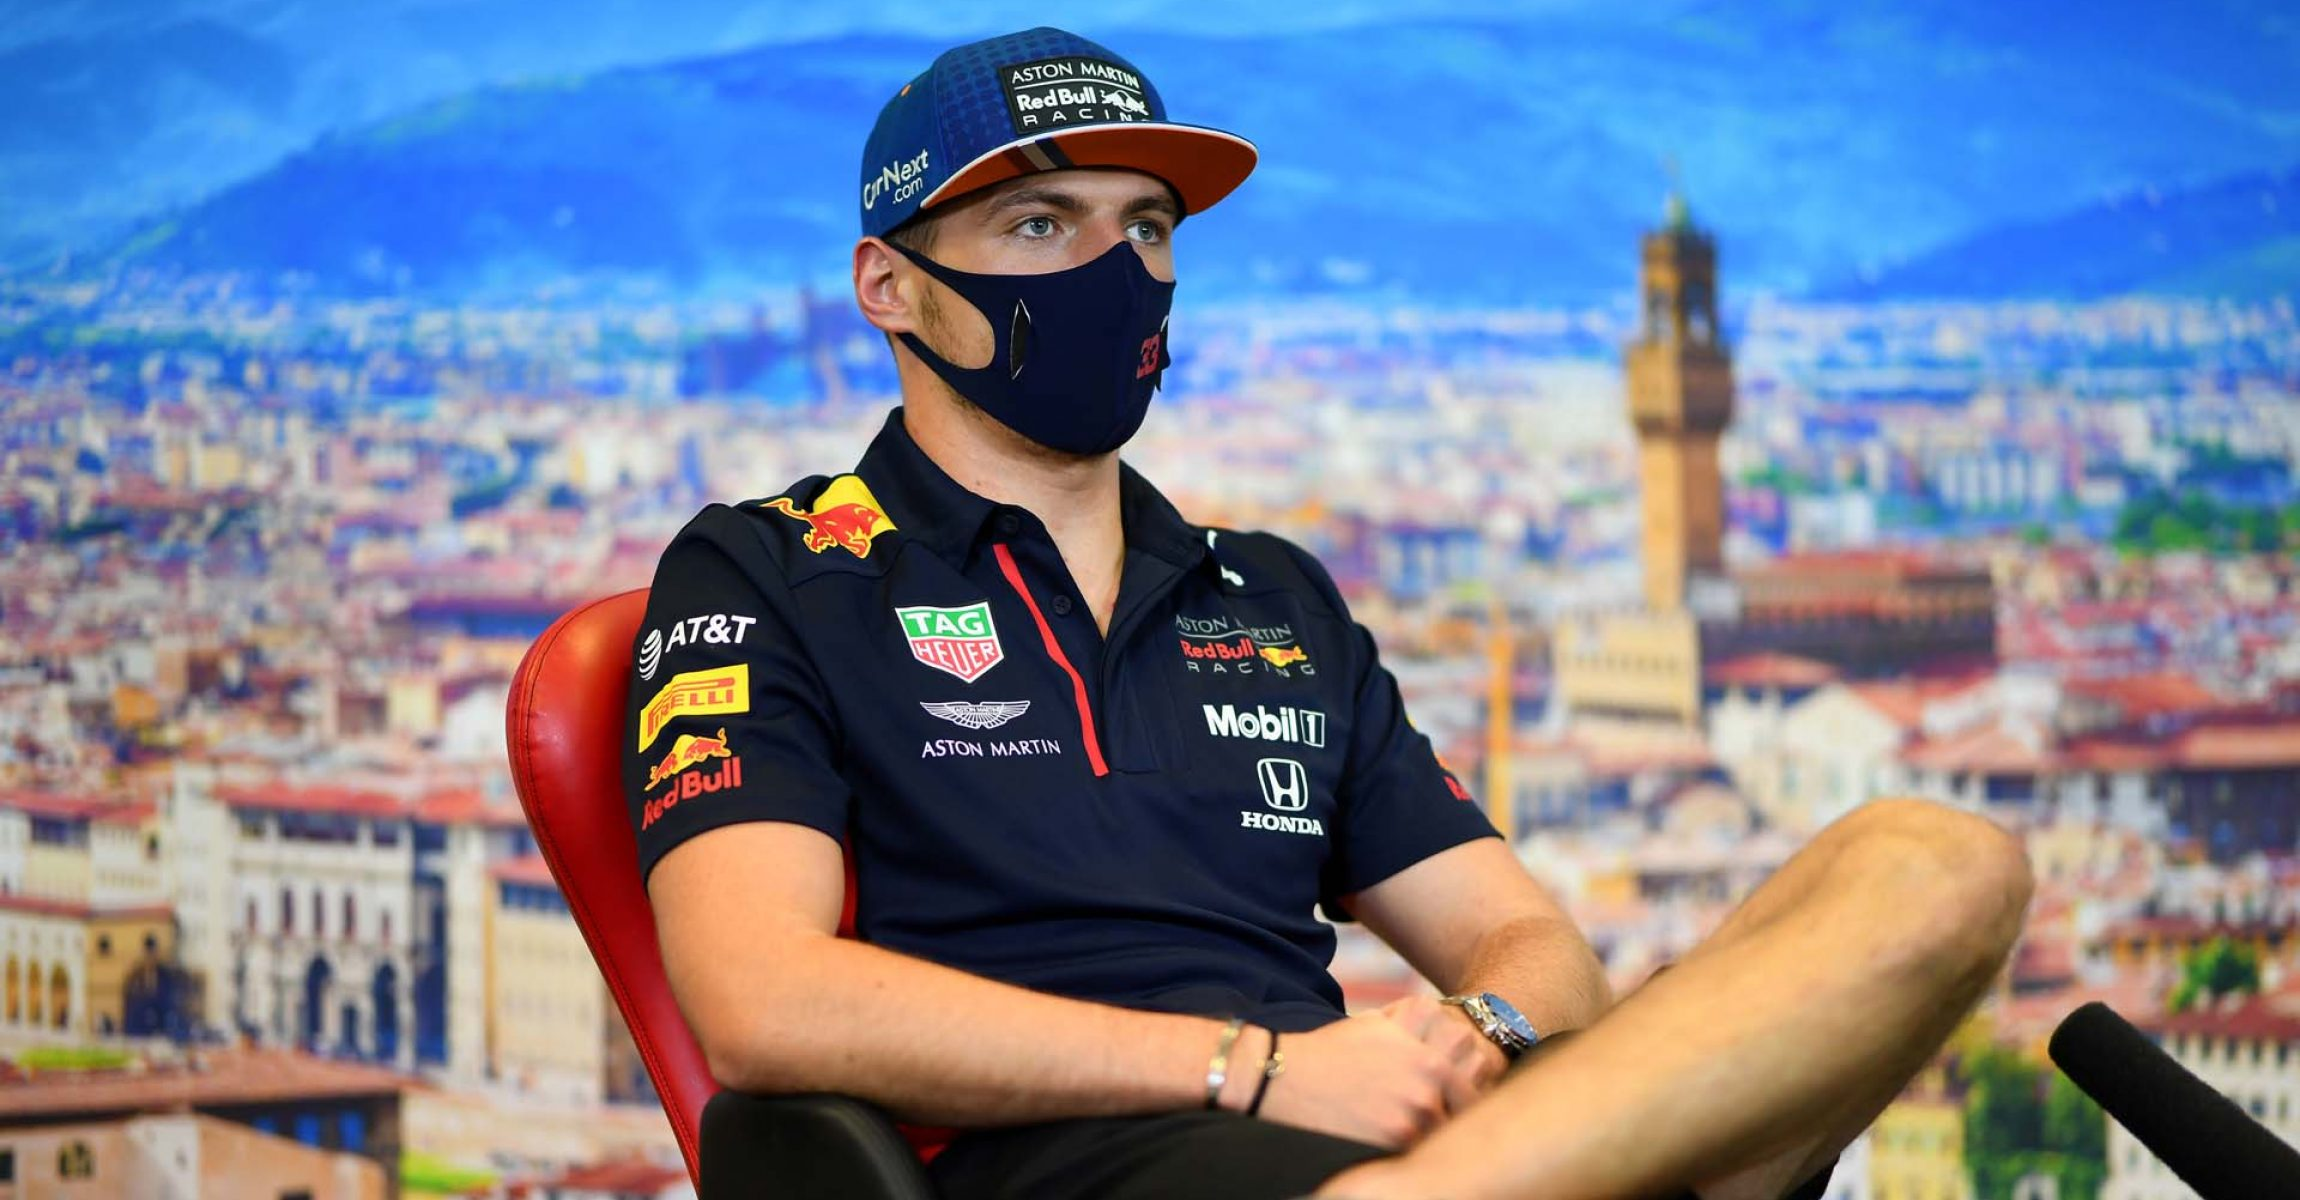 SCARPERIA, ITALY - SEPTEMBER 10: Max Verstappen of Netherlands and Red Bull Racing talks in the Drivers Press Conference during previews ahead of the F1 Grand Prix of Tuscany at Mugello Circuit on September 10, 2020 in Scarperia, Italy. (Photo by Getty Images/Getty Images)